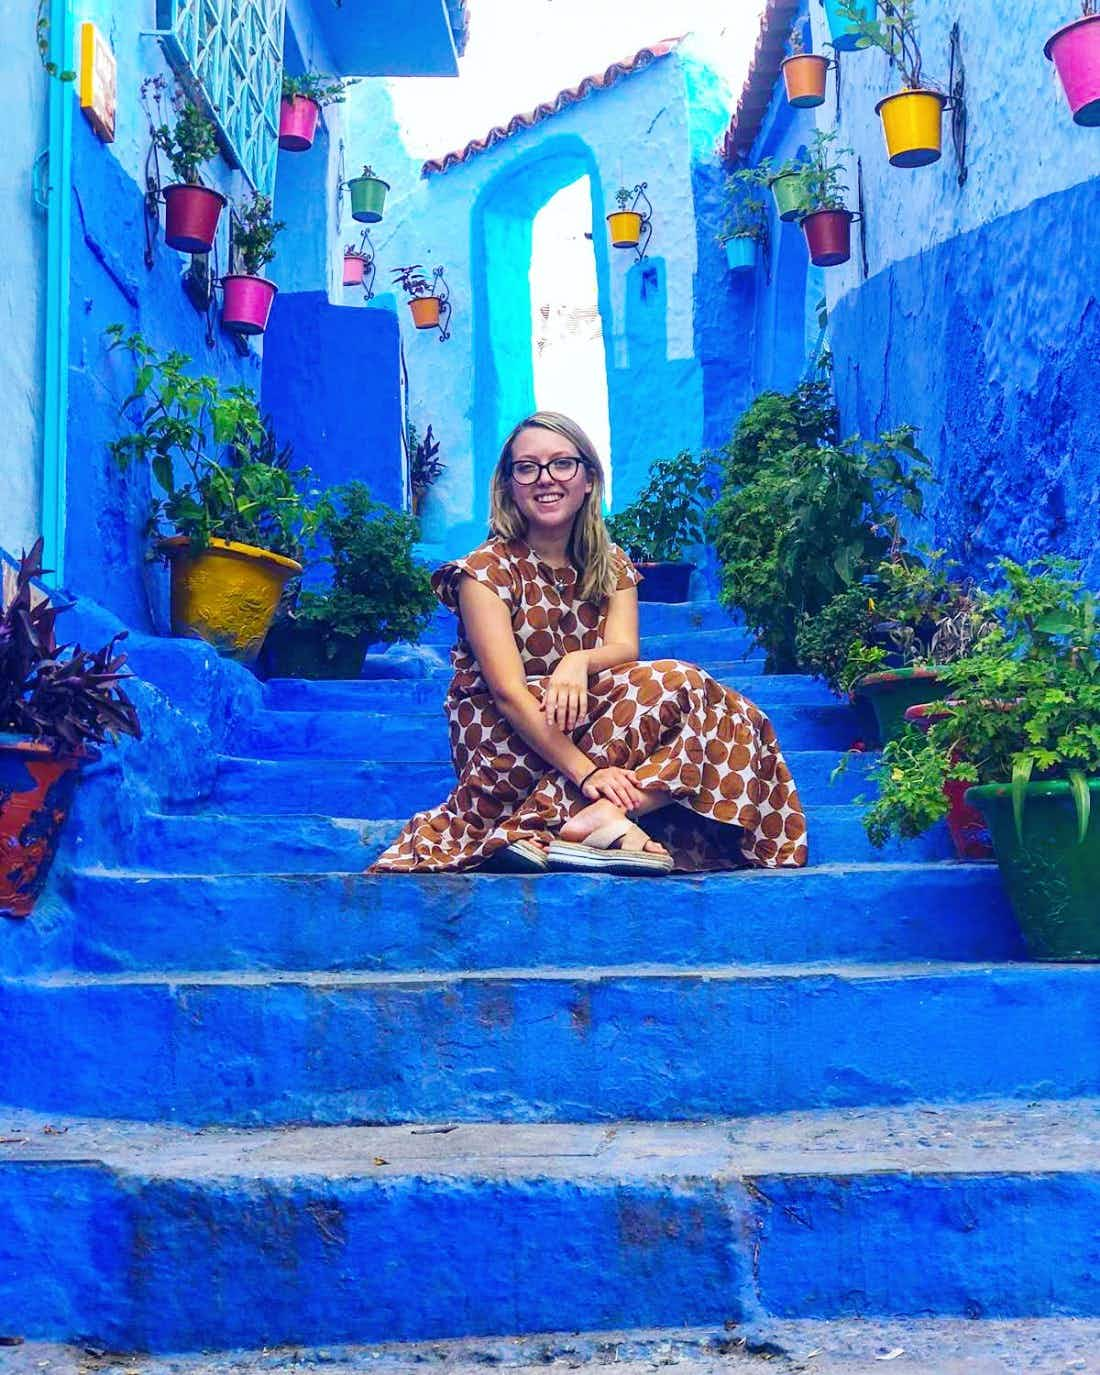 Marie-France Roy (56) is a travel writer and blogger from Montréal. Image: Big Travel Nut